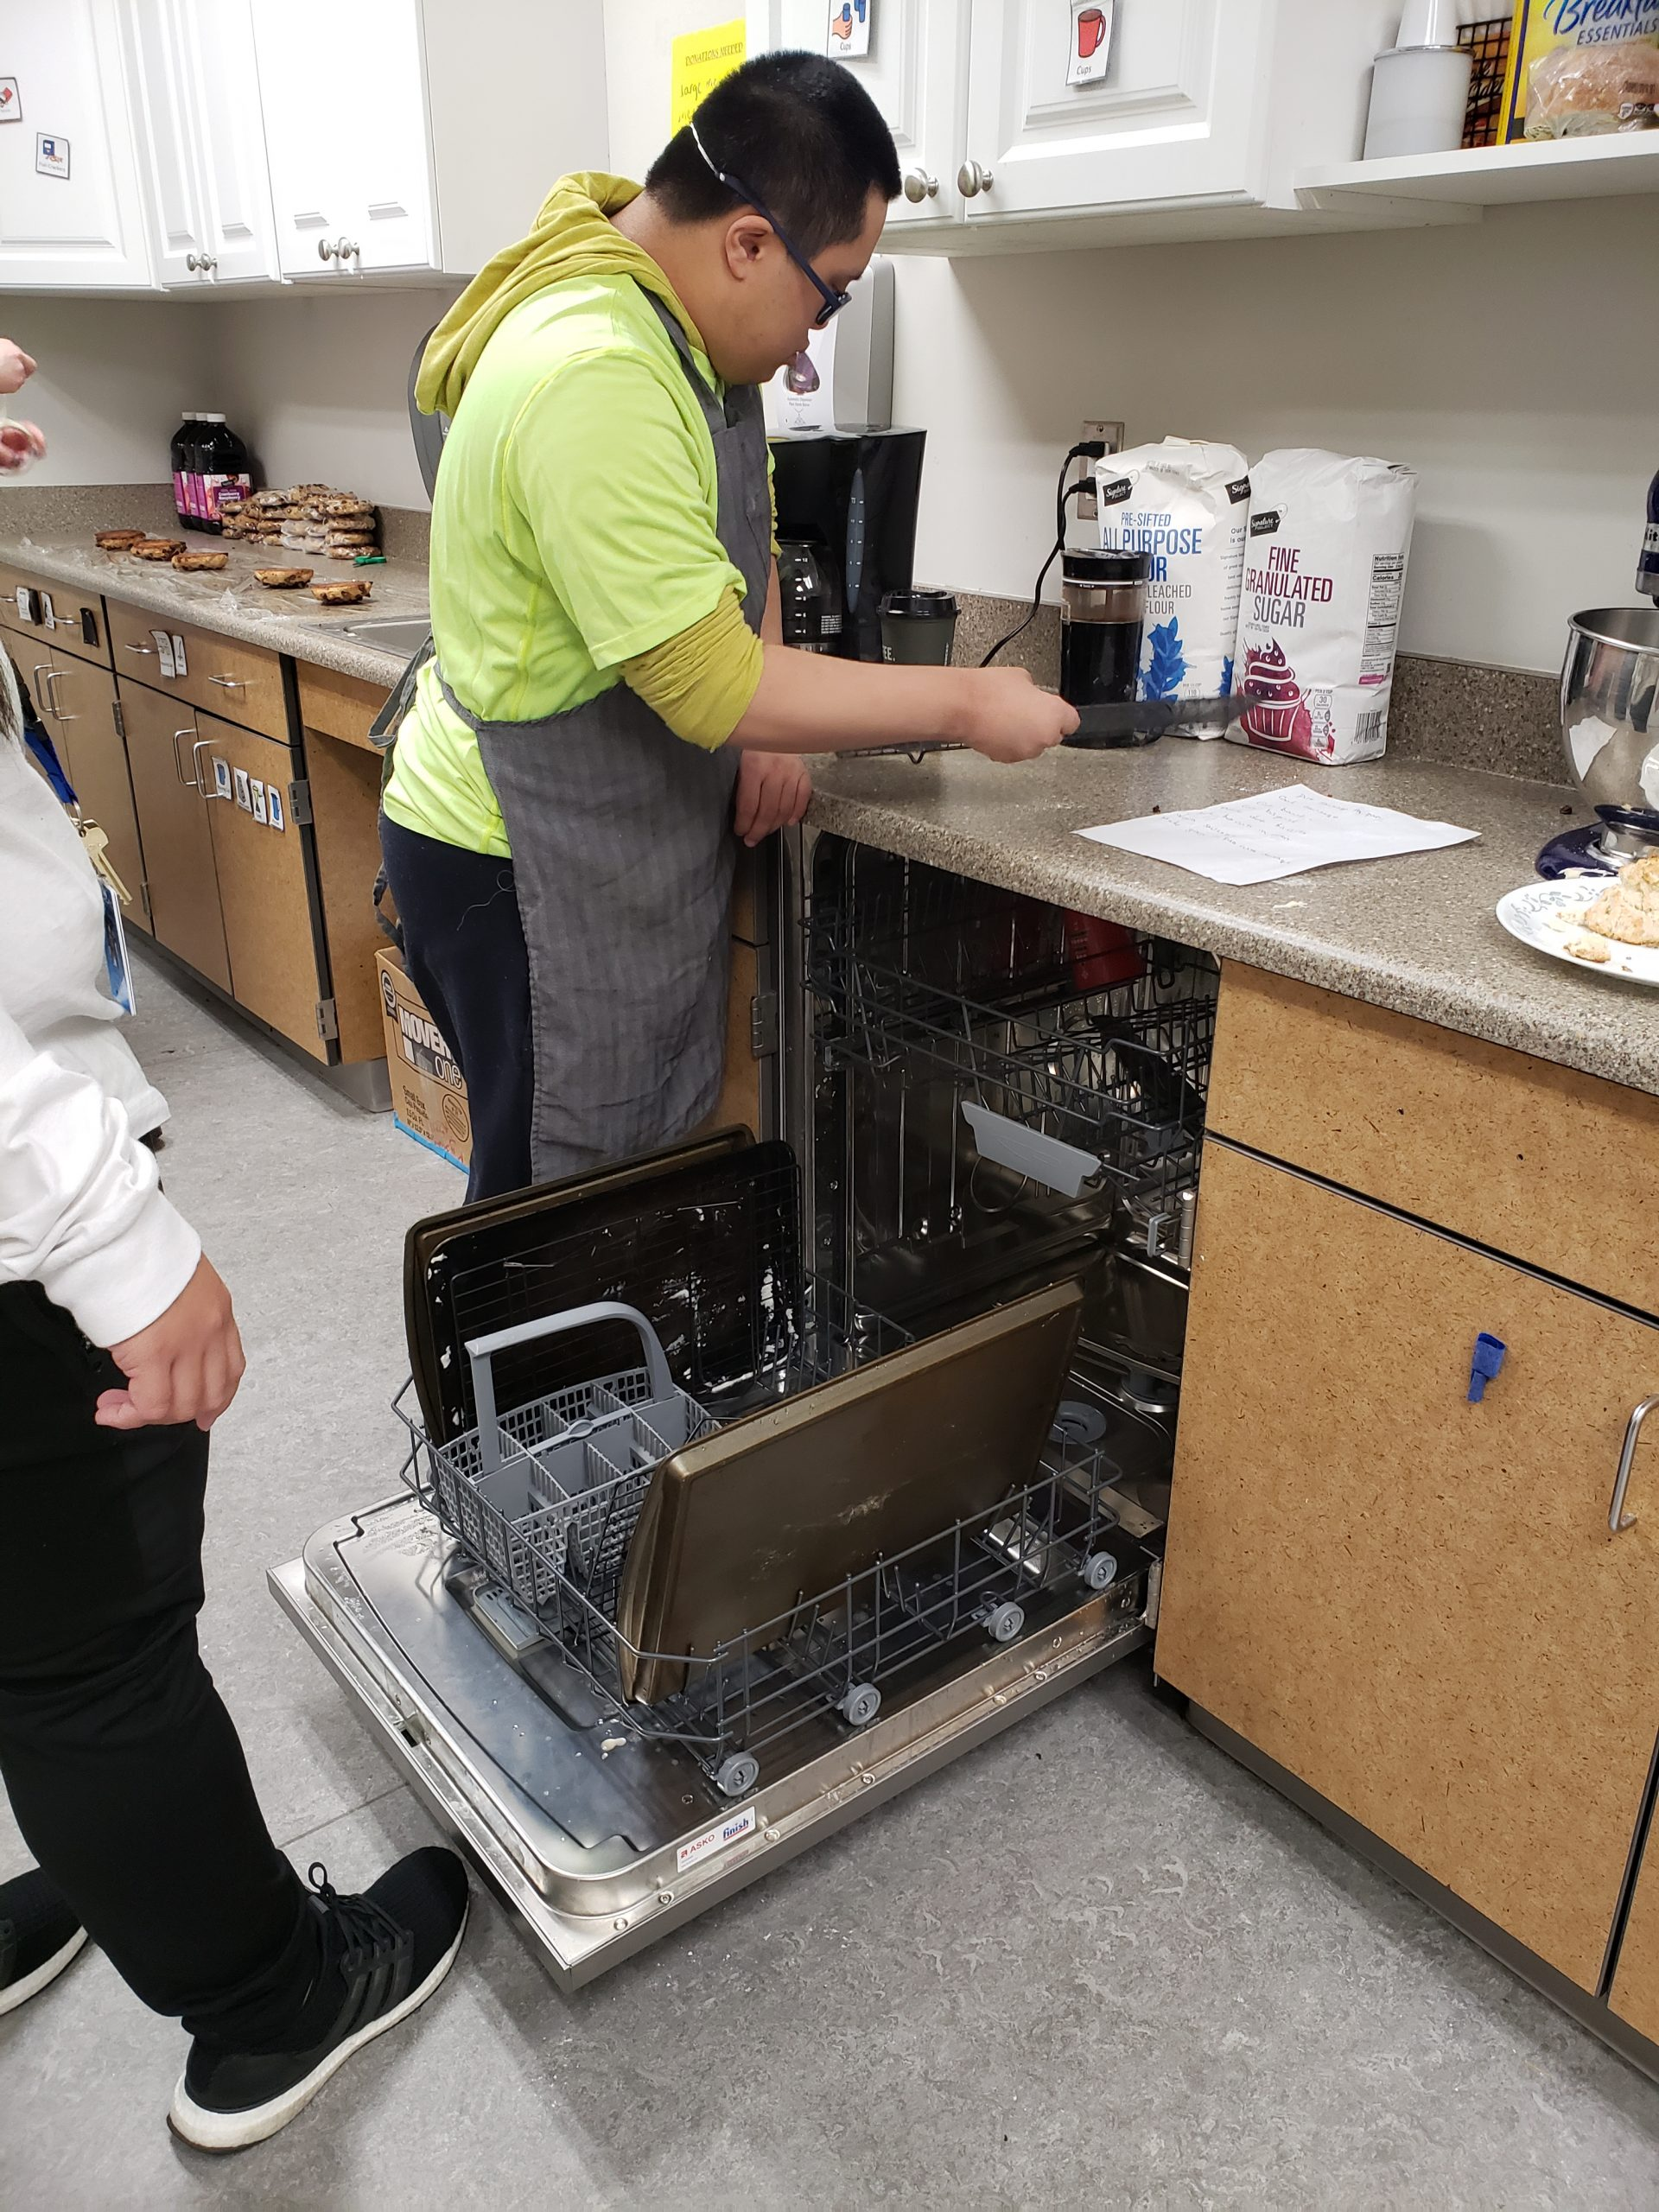 An adult male is learning job skills while loading the dishwasher after cooking class.